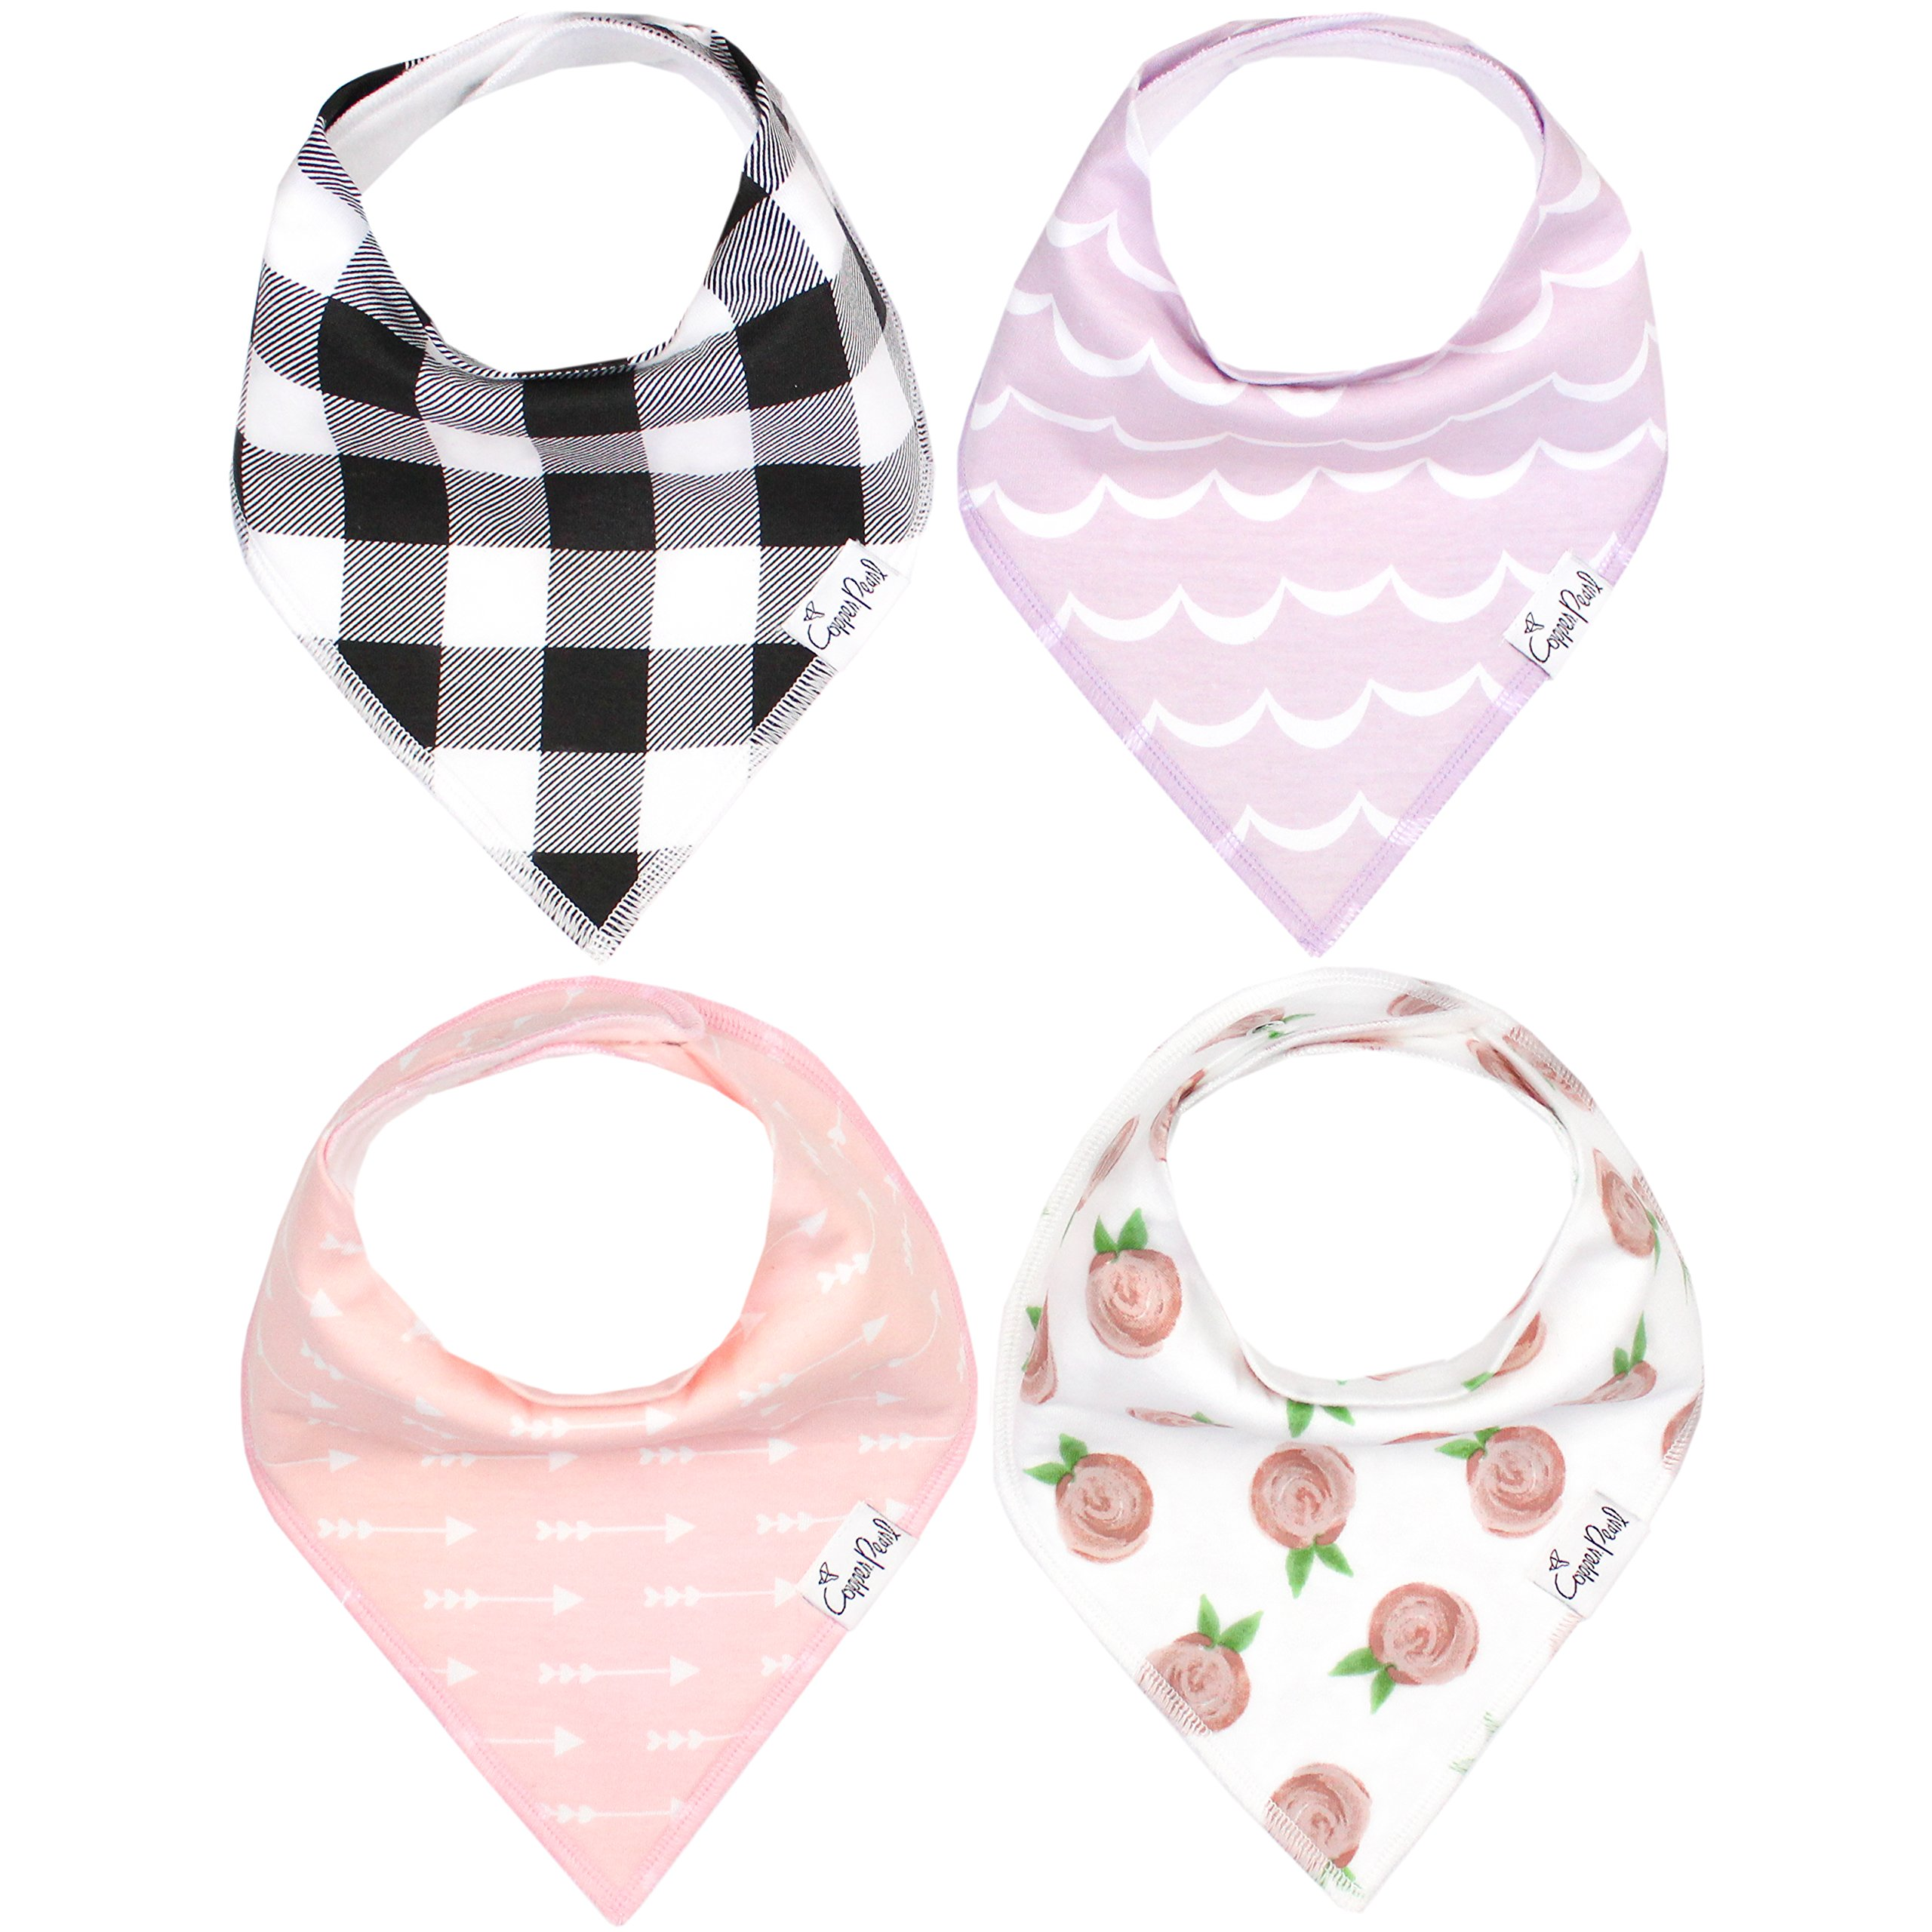 Baby Bandana Drool Bibs for Drooling and Teething 4 Pack Gift Set For Girls ''Rosie Set'' by Copper Pearl